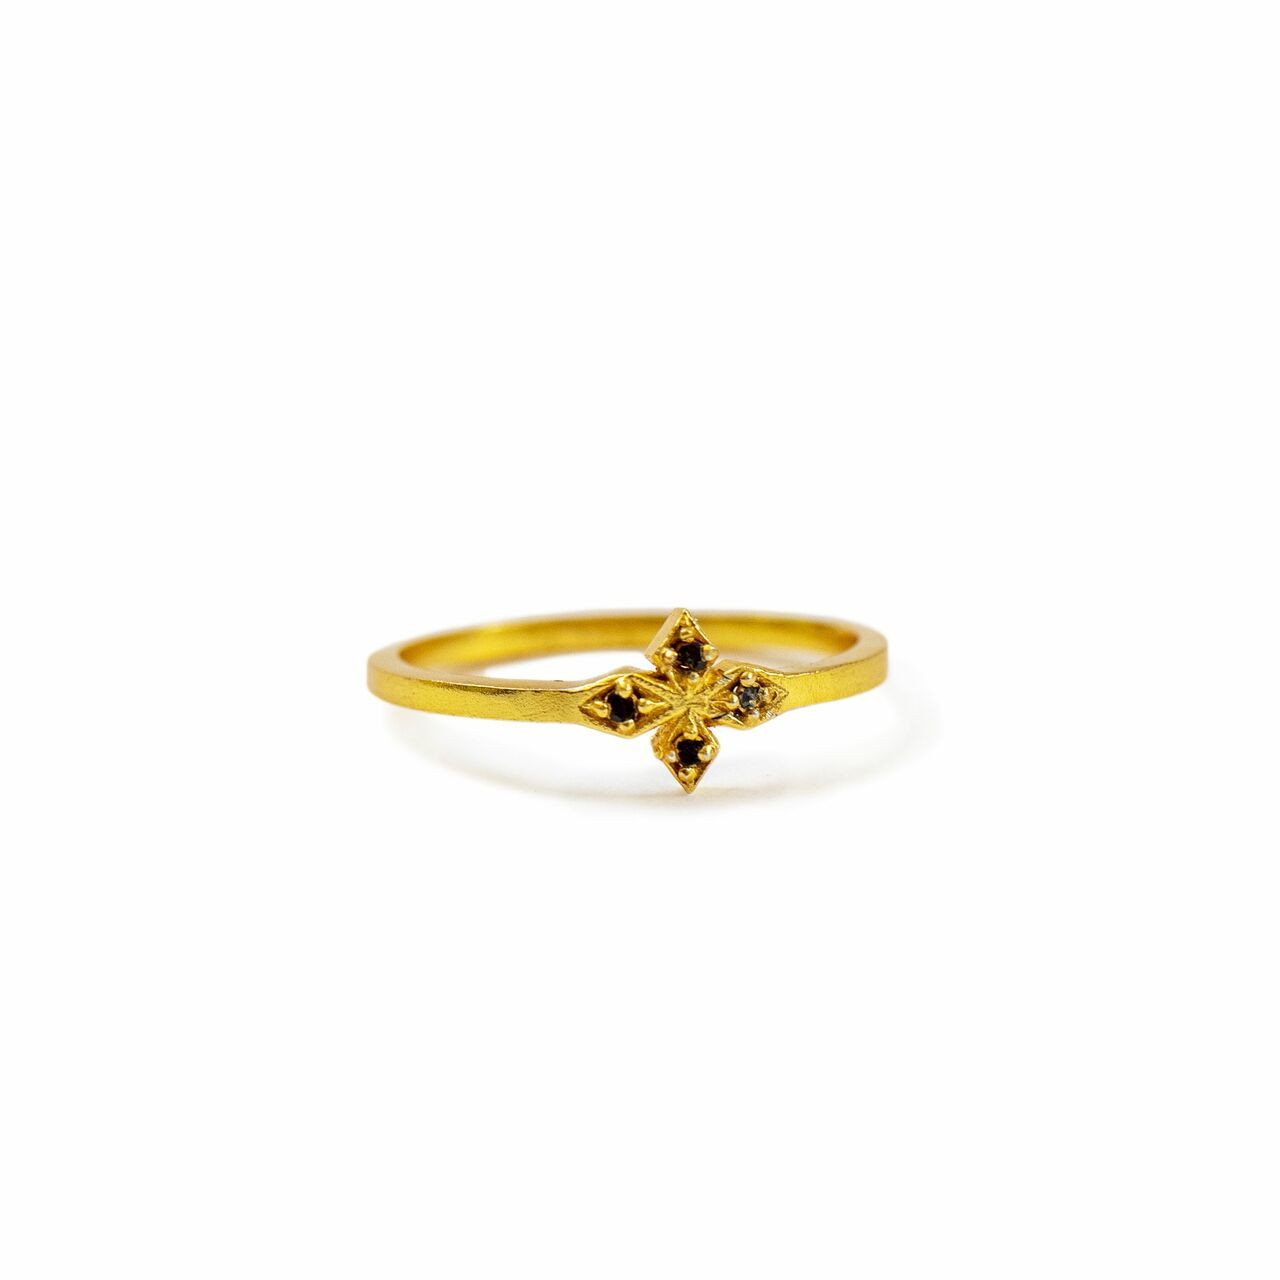 Gold Plated Ring with Black Zircon Stone Creative Designs